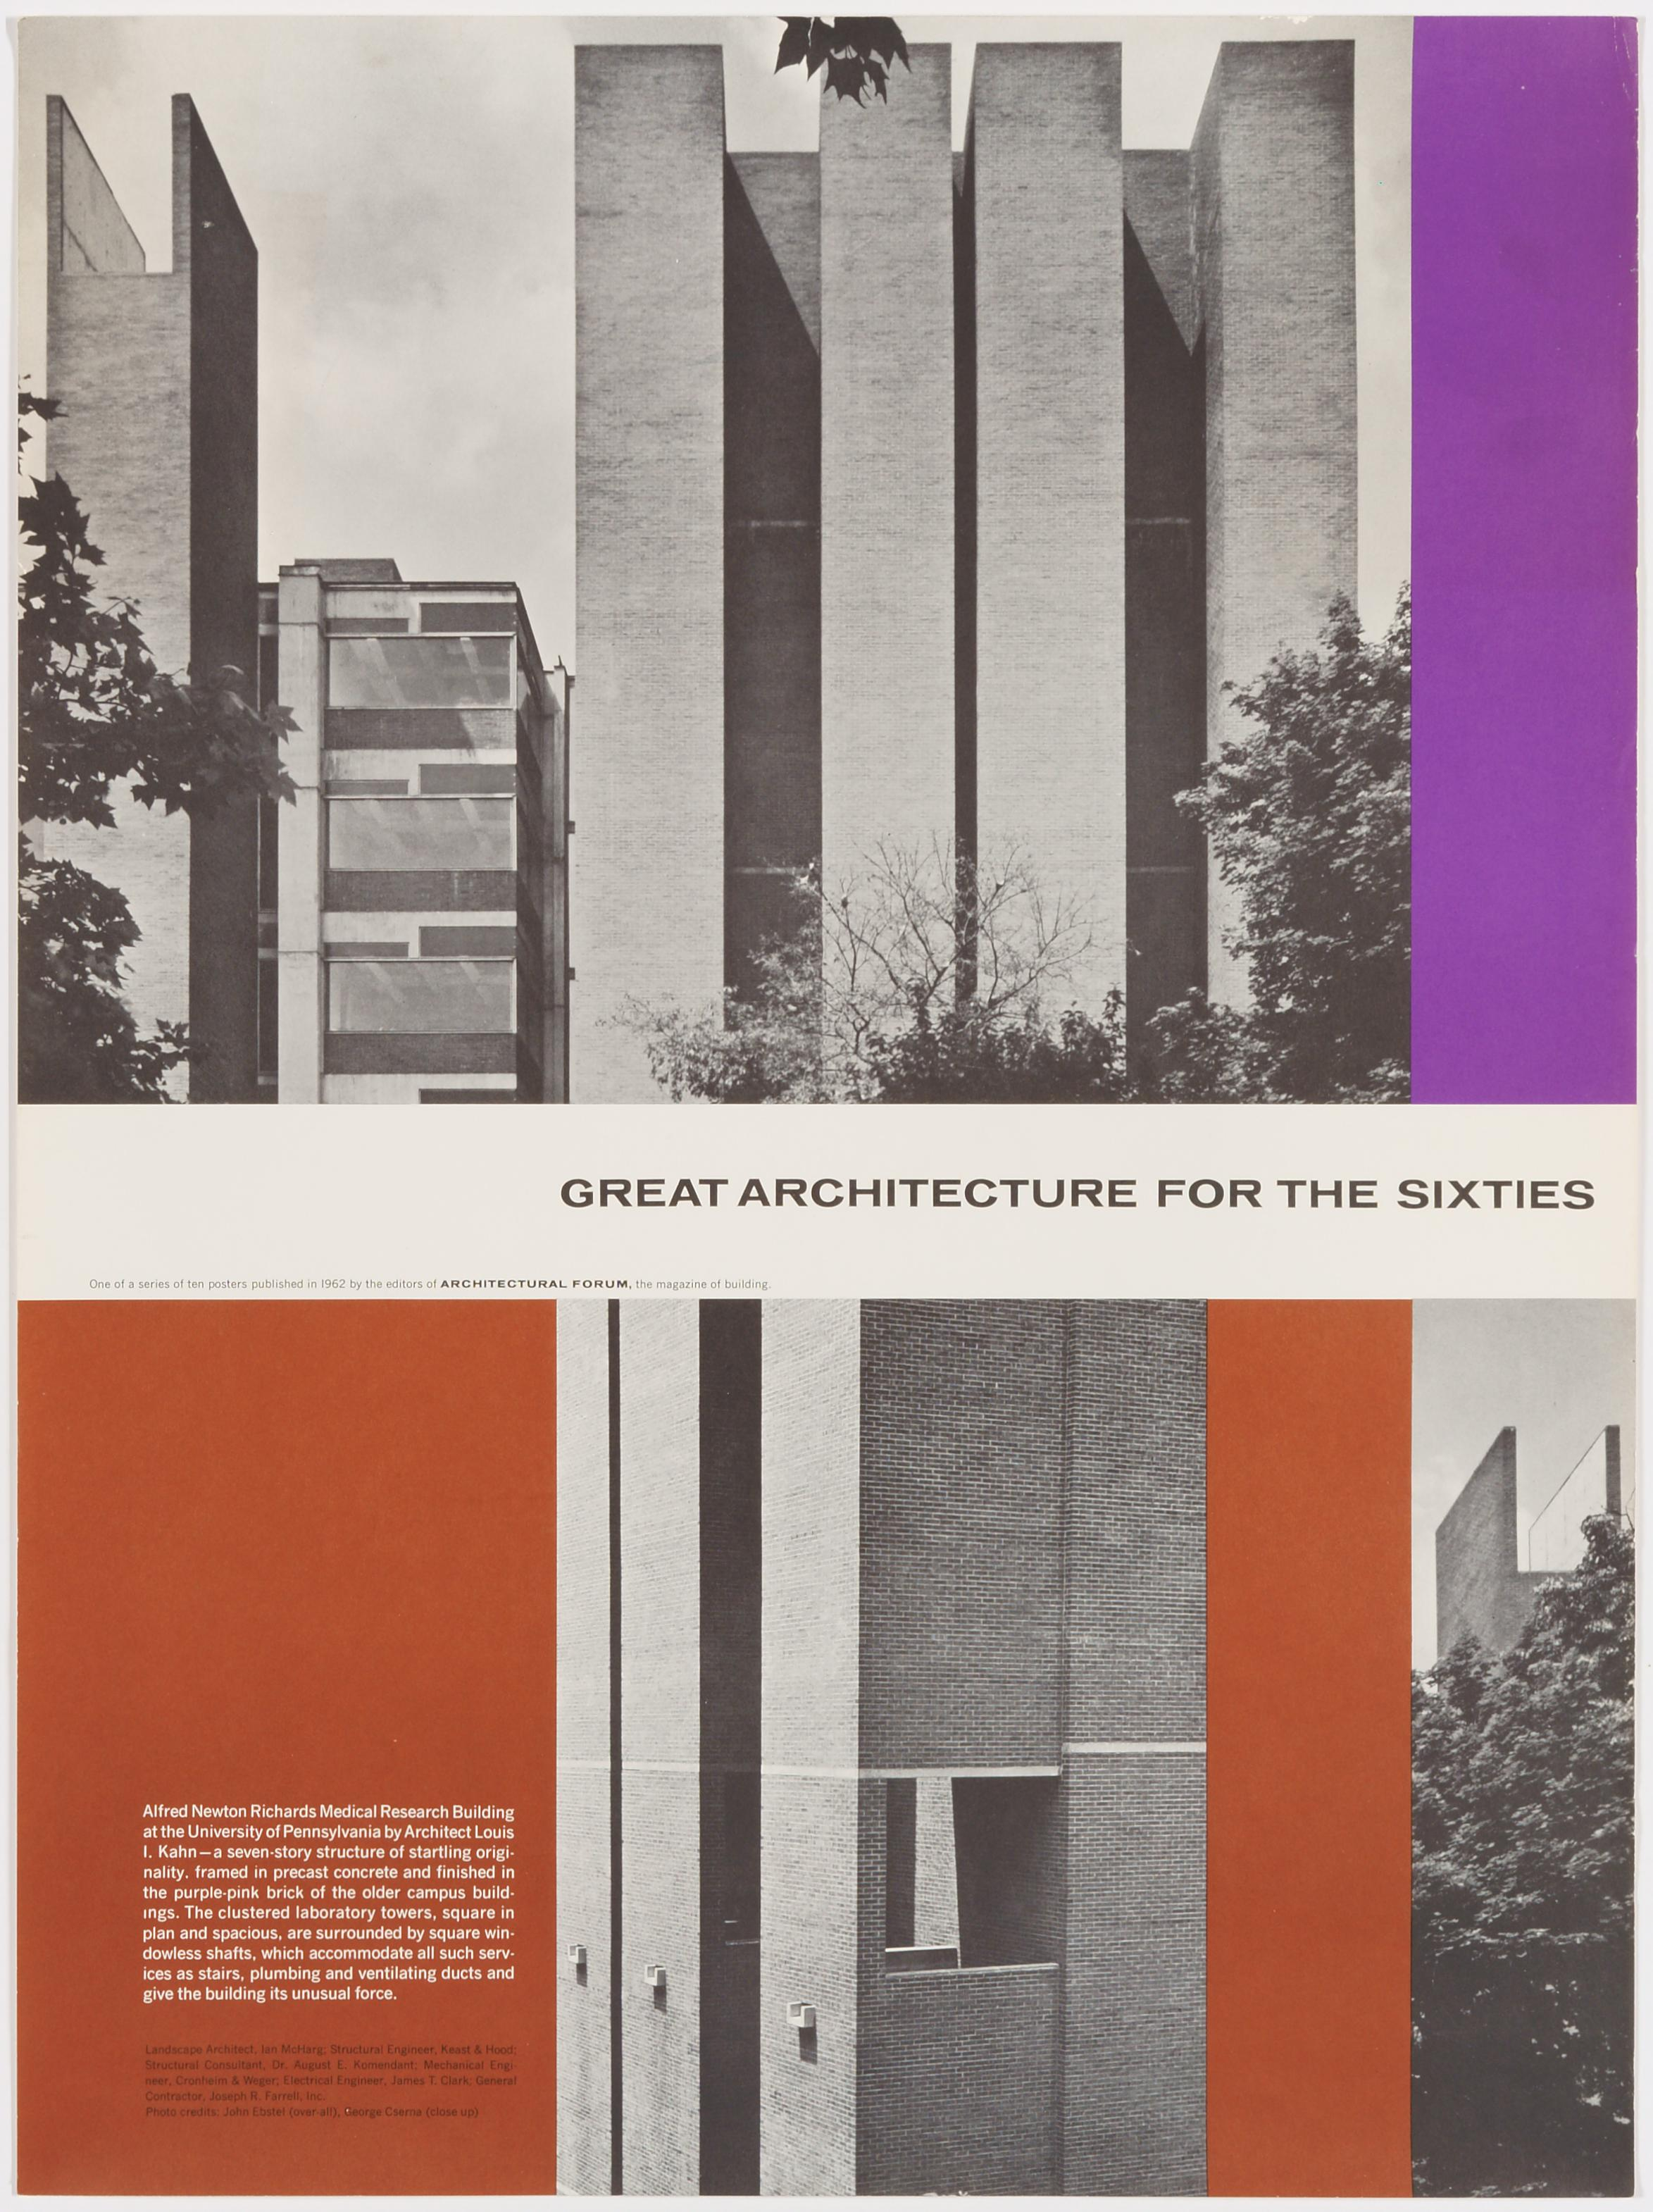 Great Architecture for the Sixties –Medical Research Building by Louis Kahn